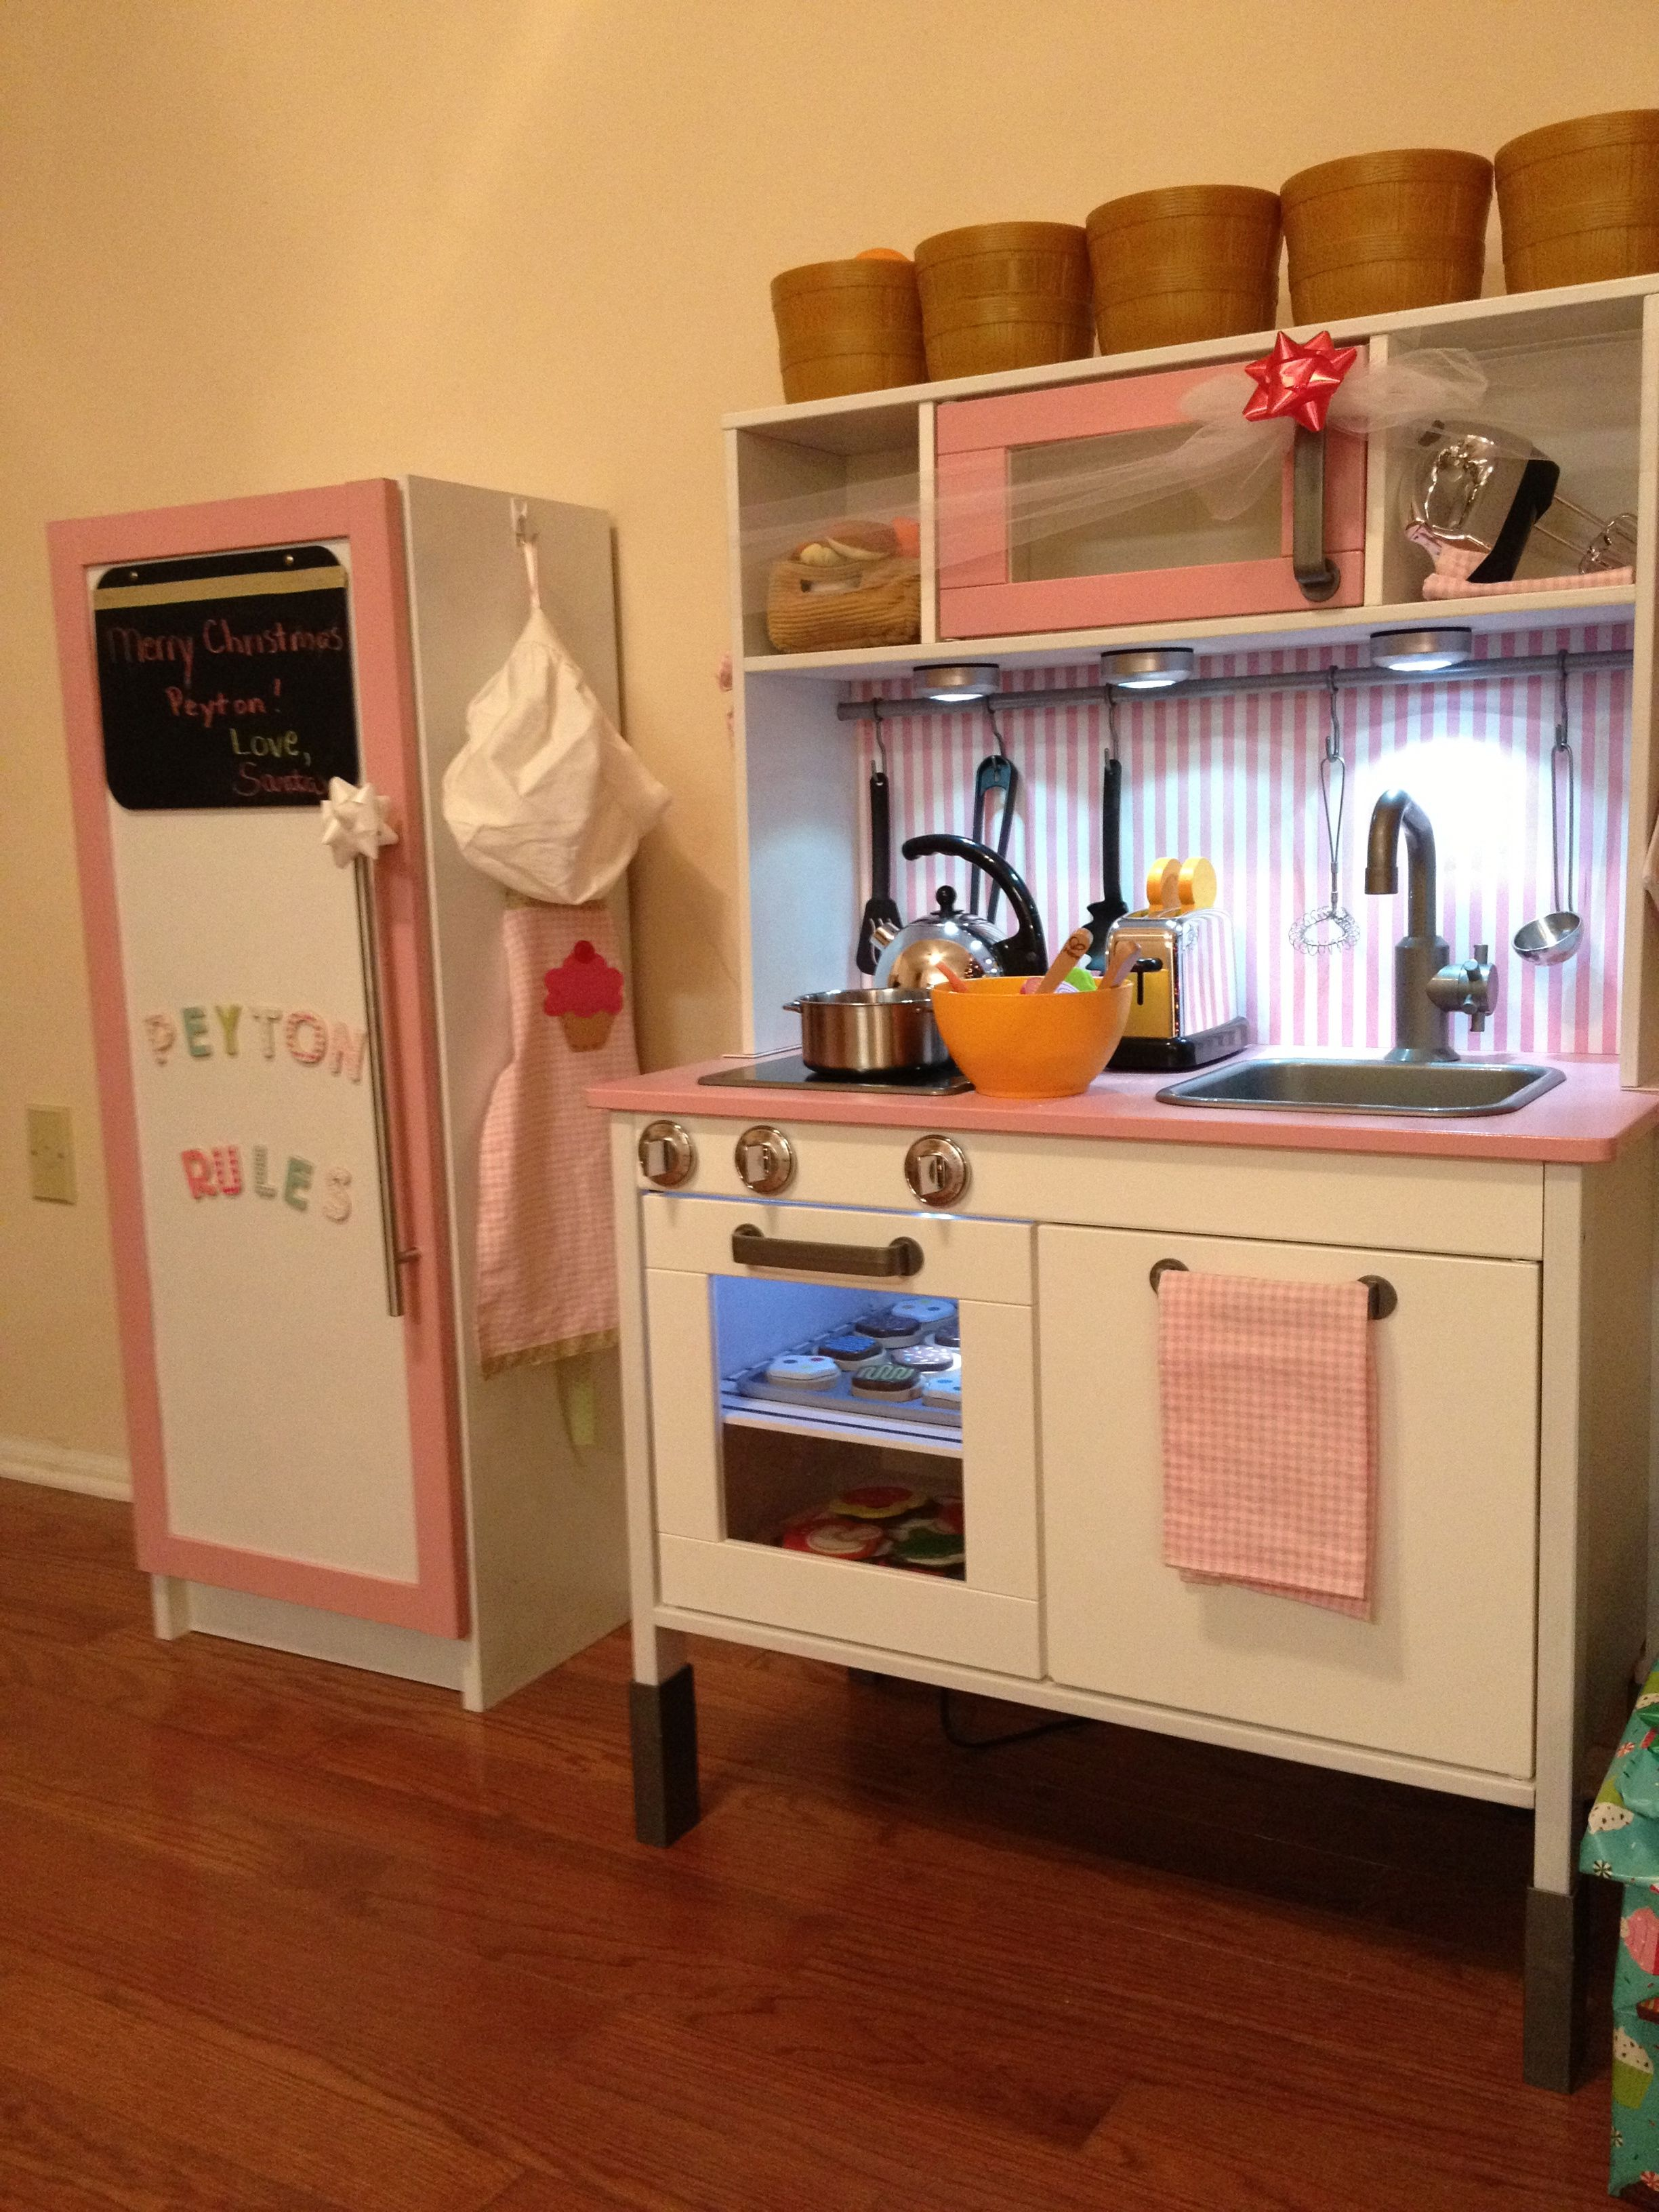 The 5 best DIY play kitchens | Pinterest | Arbeitsplatte ...